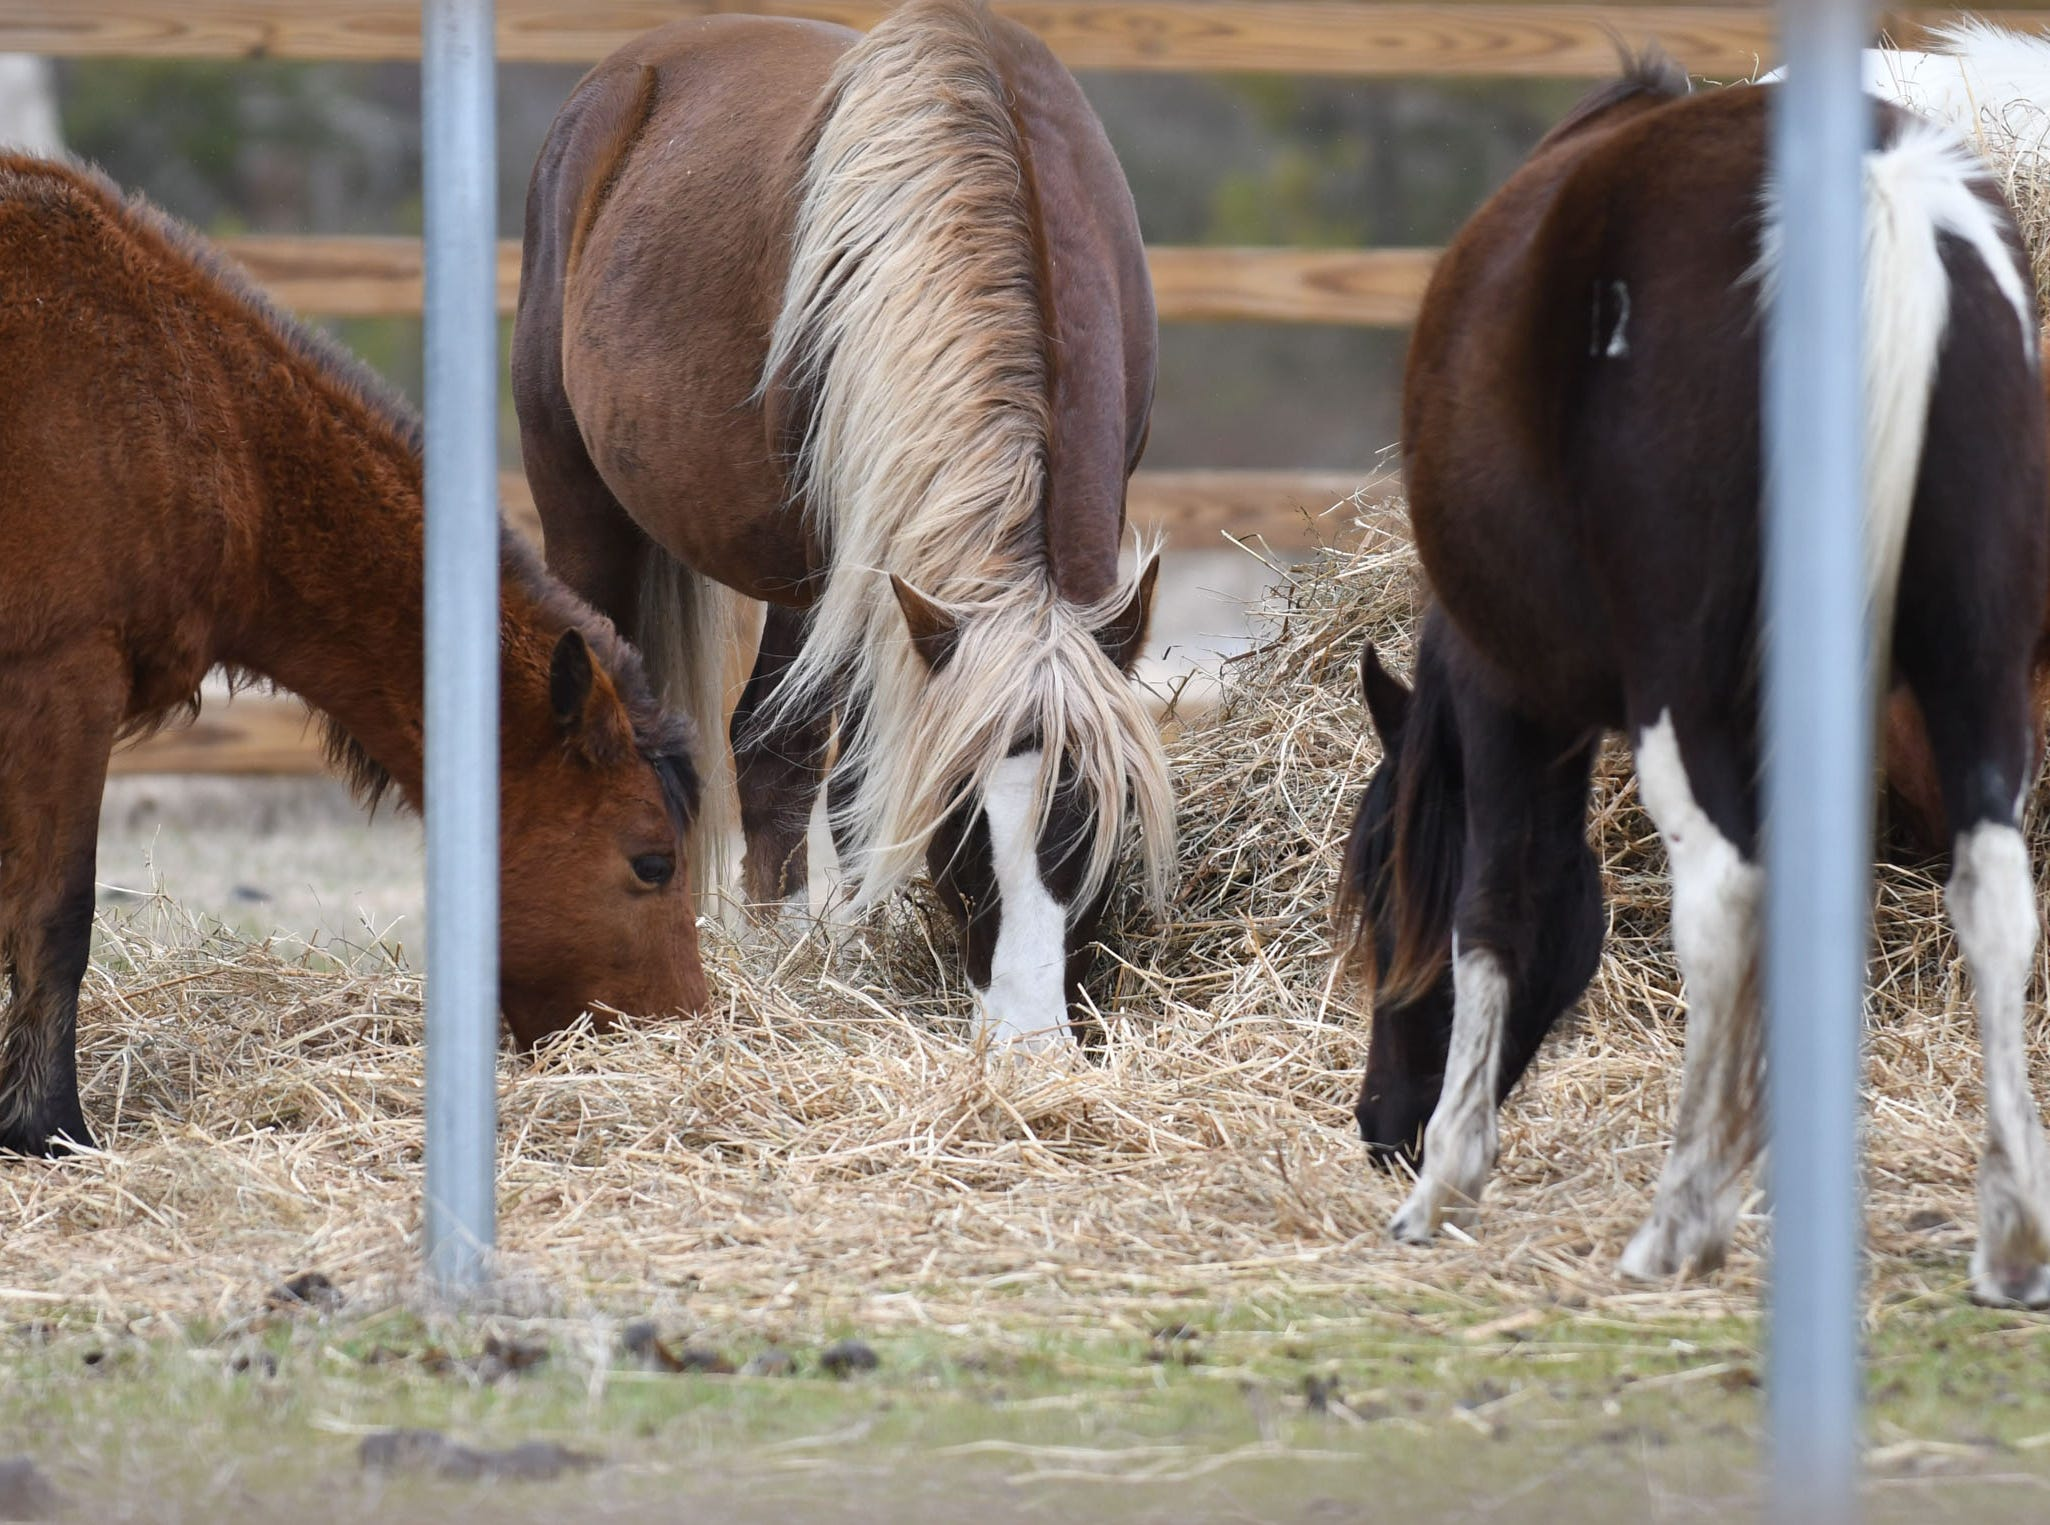 Chincoteague pony stallion Riptide and his band are now penned in the south corral on Assateague Island after visitors to the Chincoteague National Wildlife Refuge disregarded warnings not to approach the wild ponies.